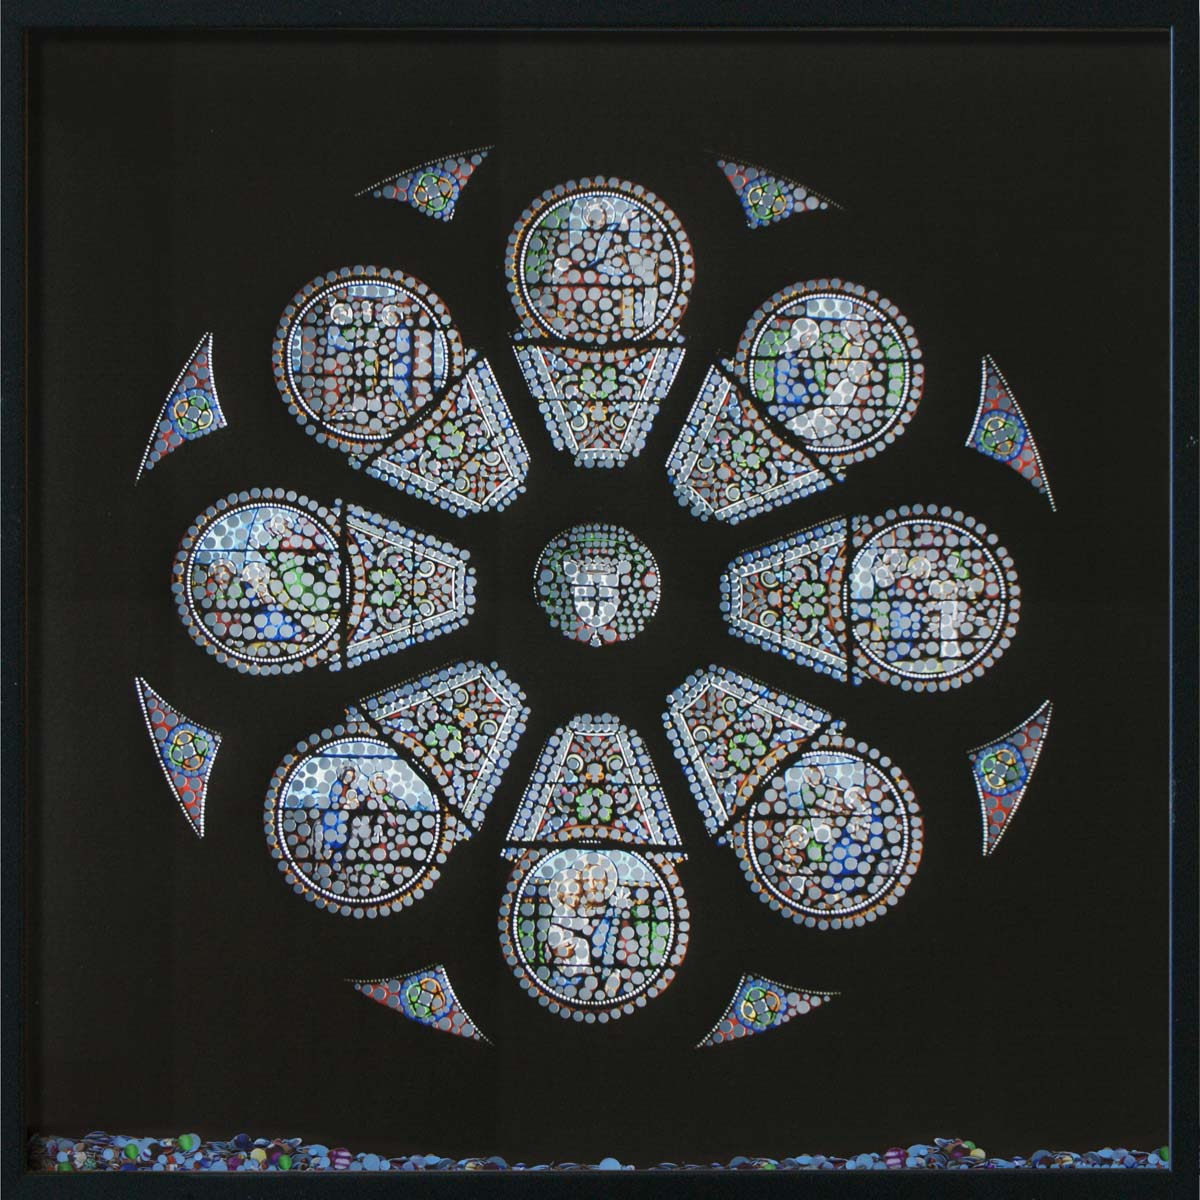 Revelation, Cathédrale Saint-Front, © 2011, Perforated inkjet print, loose confetti produced by the perforation process, each 50 x 50 cm